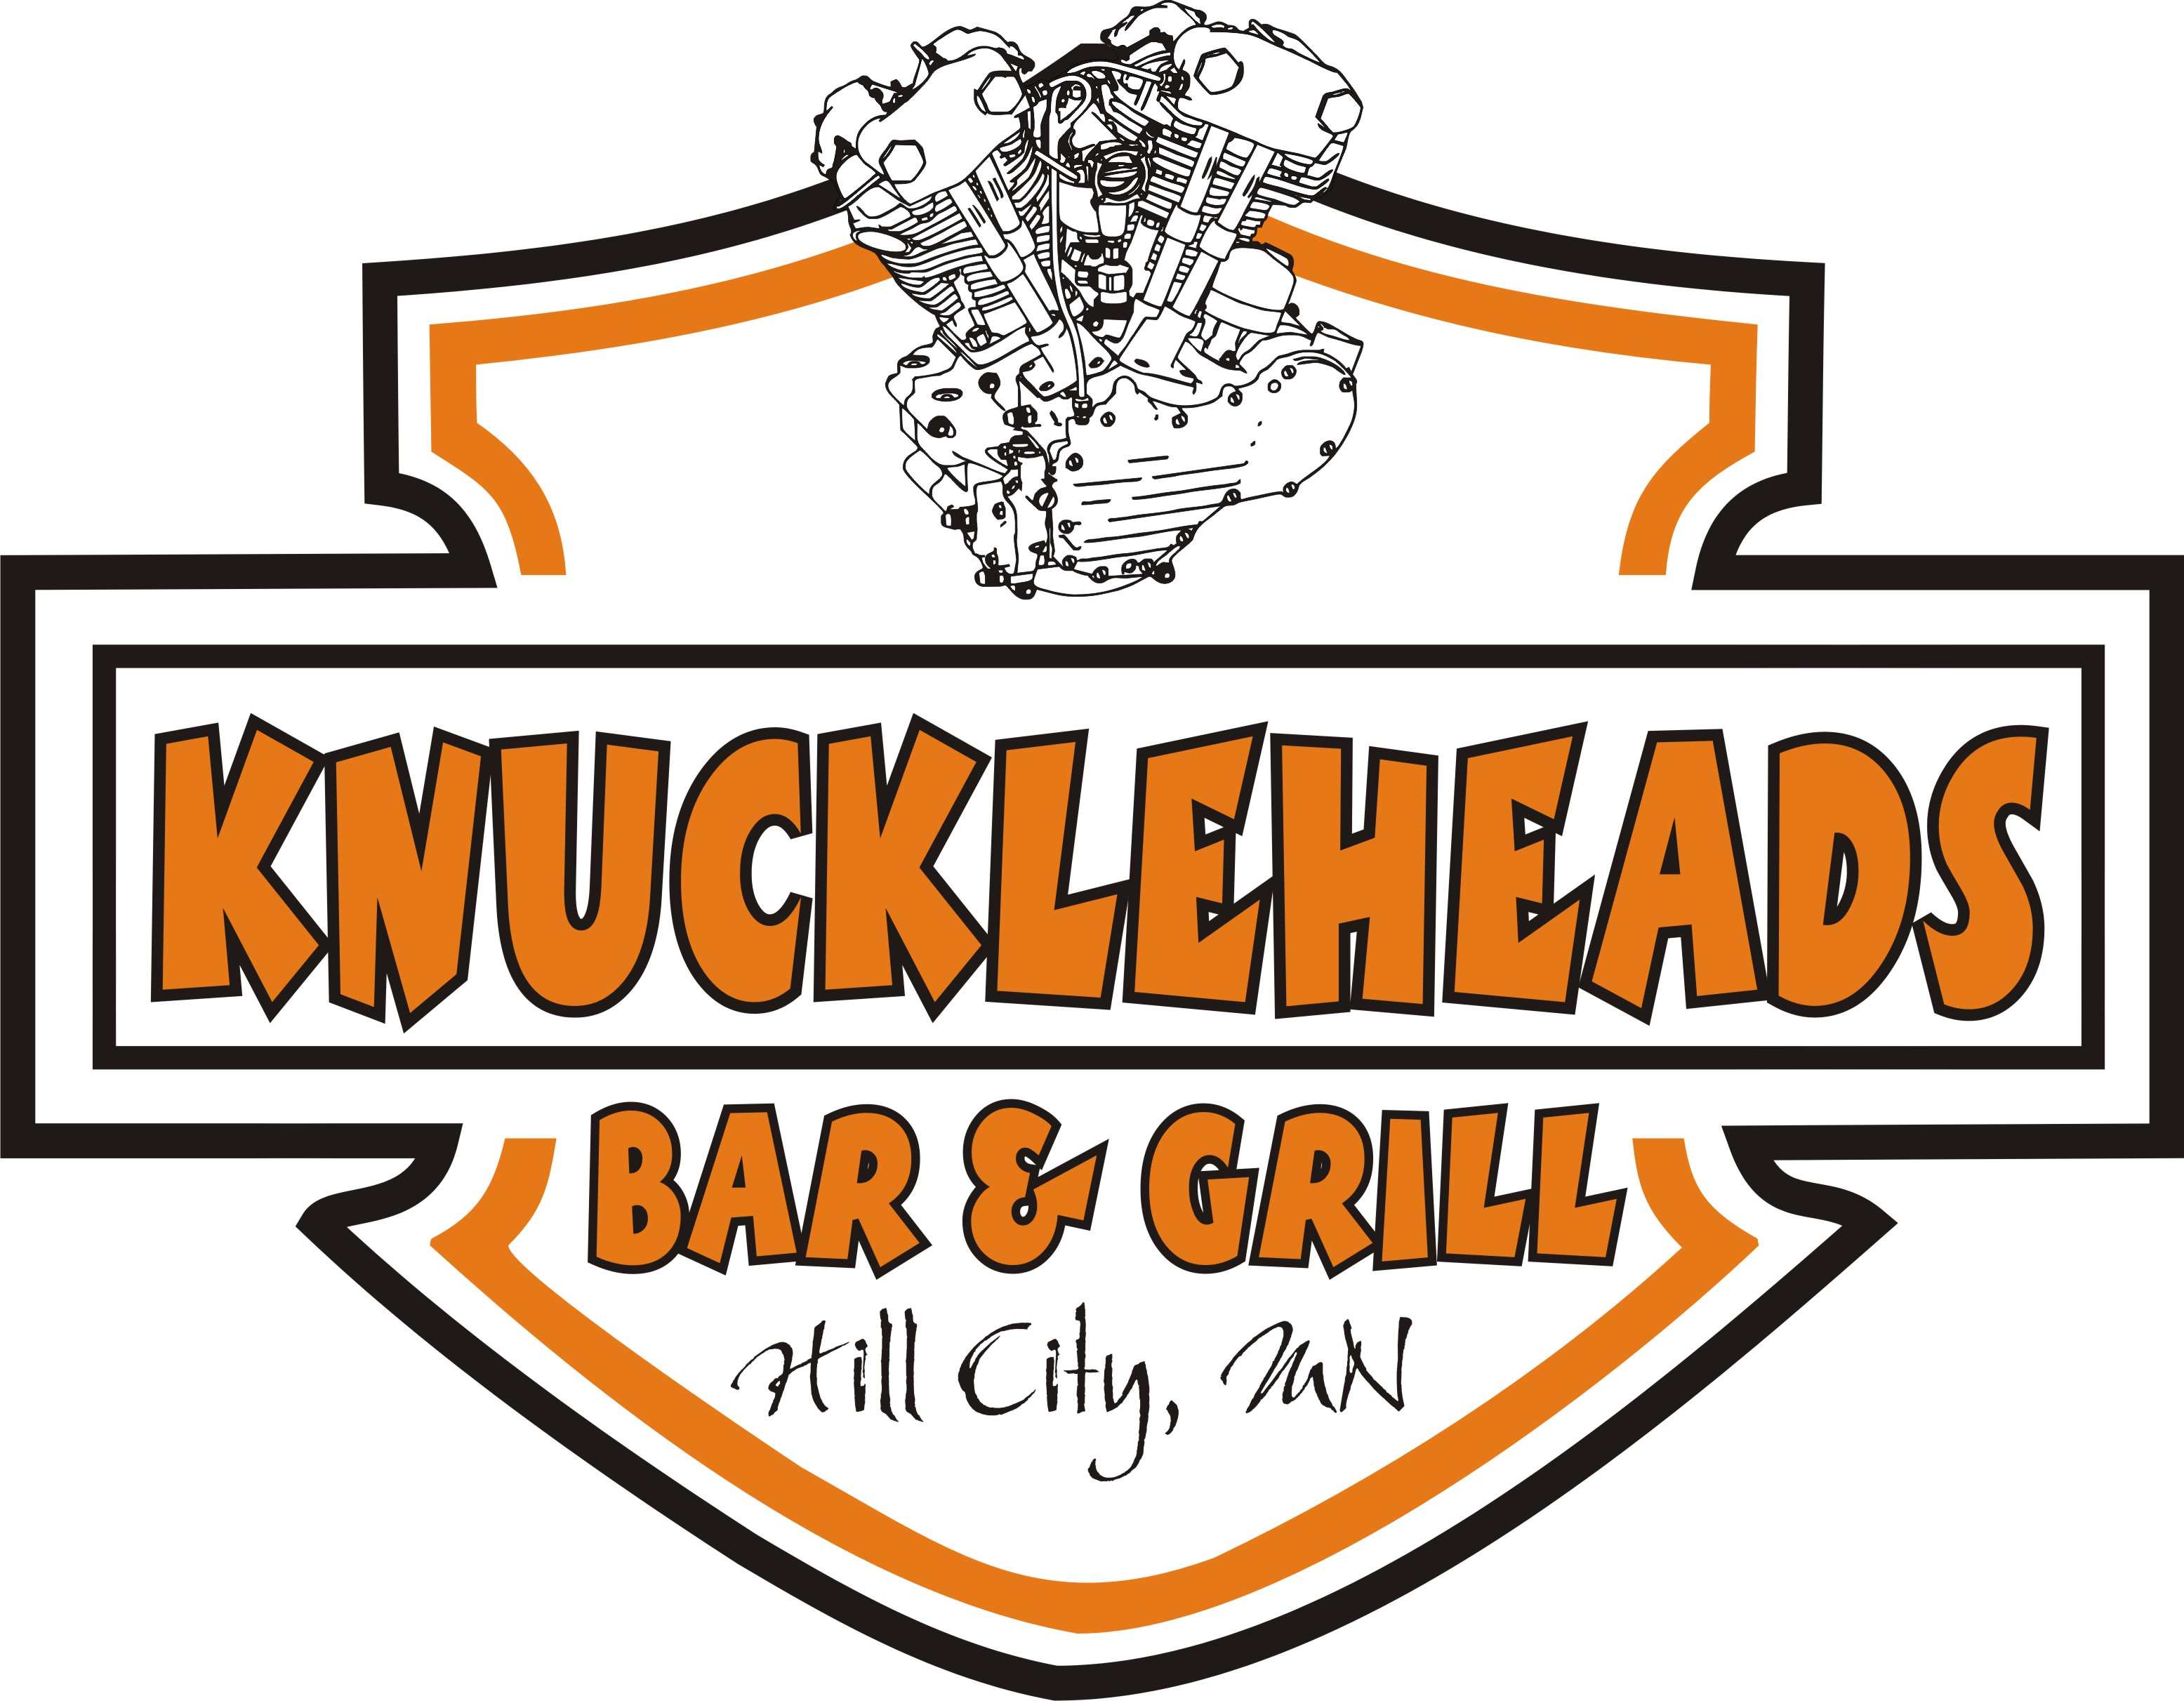 Knuckleheads Bar & Grill Home